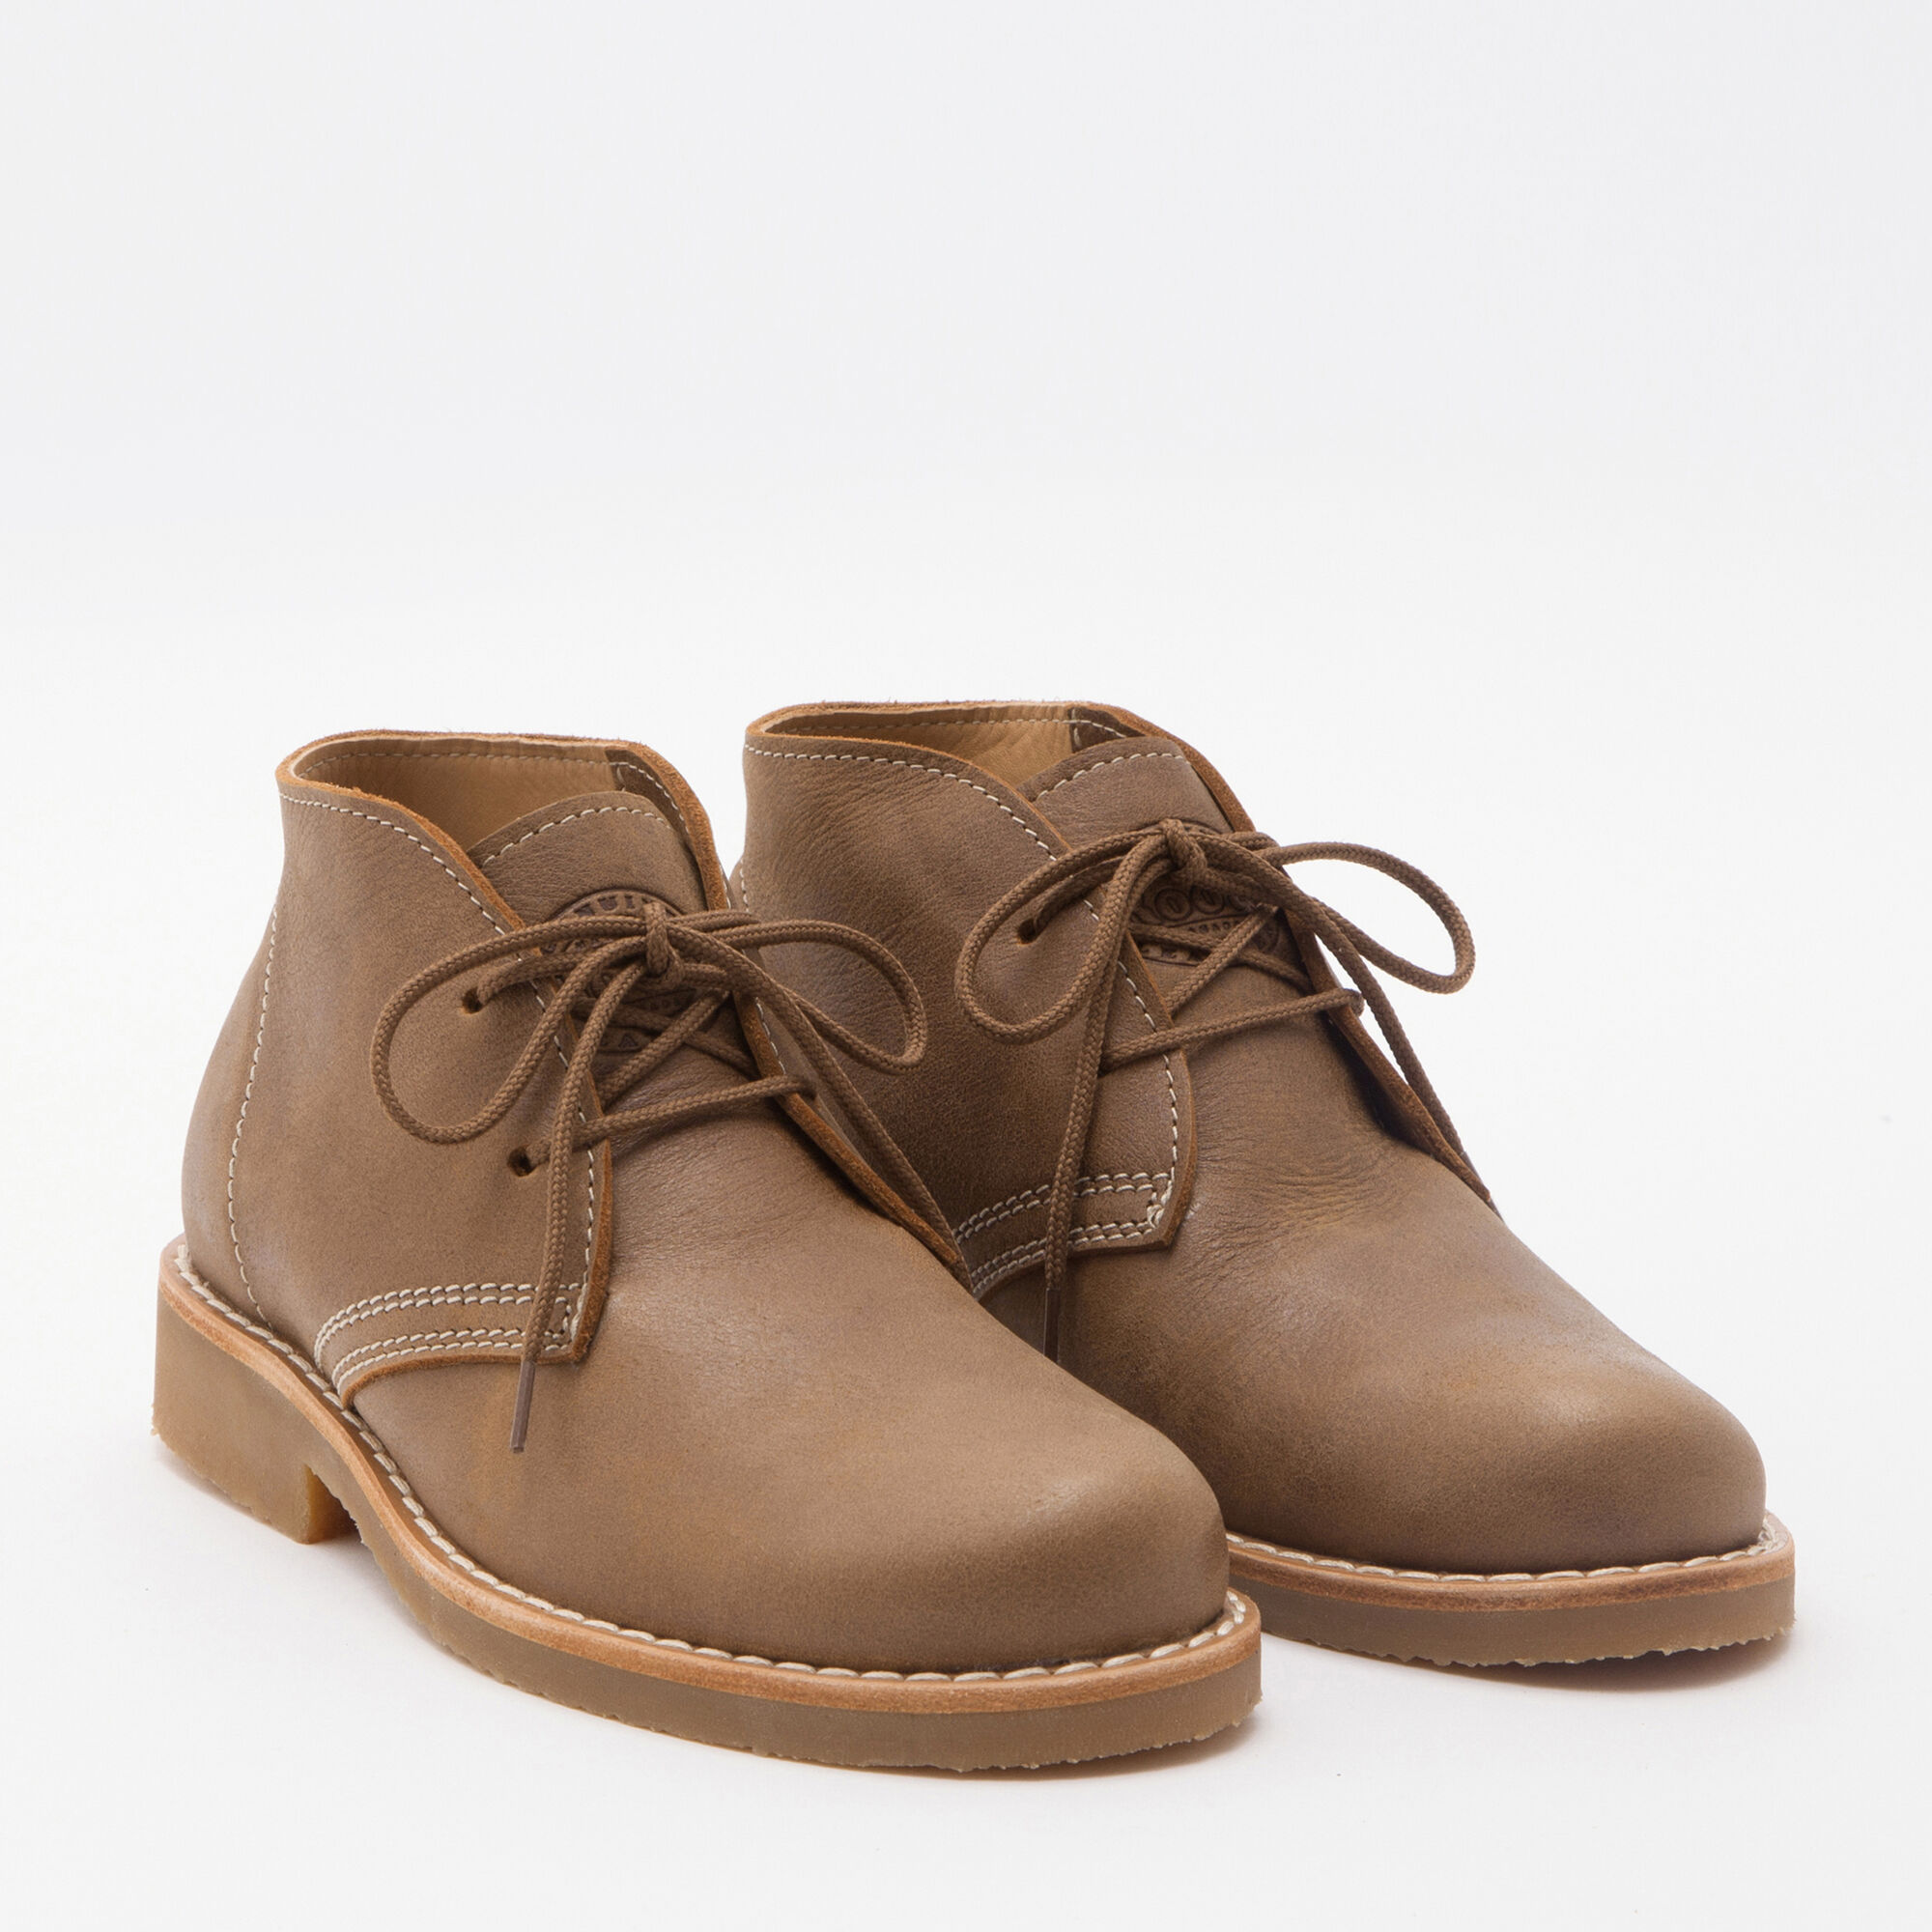 Botte Chukka cuir Tribe pour hommes